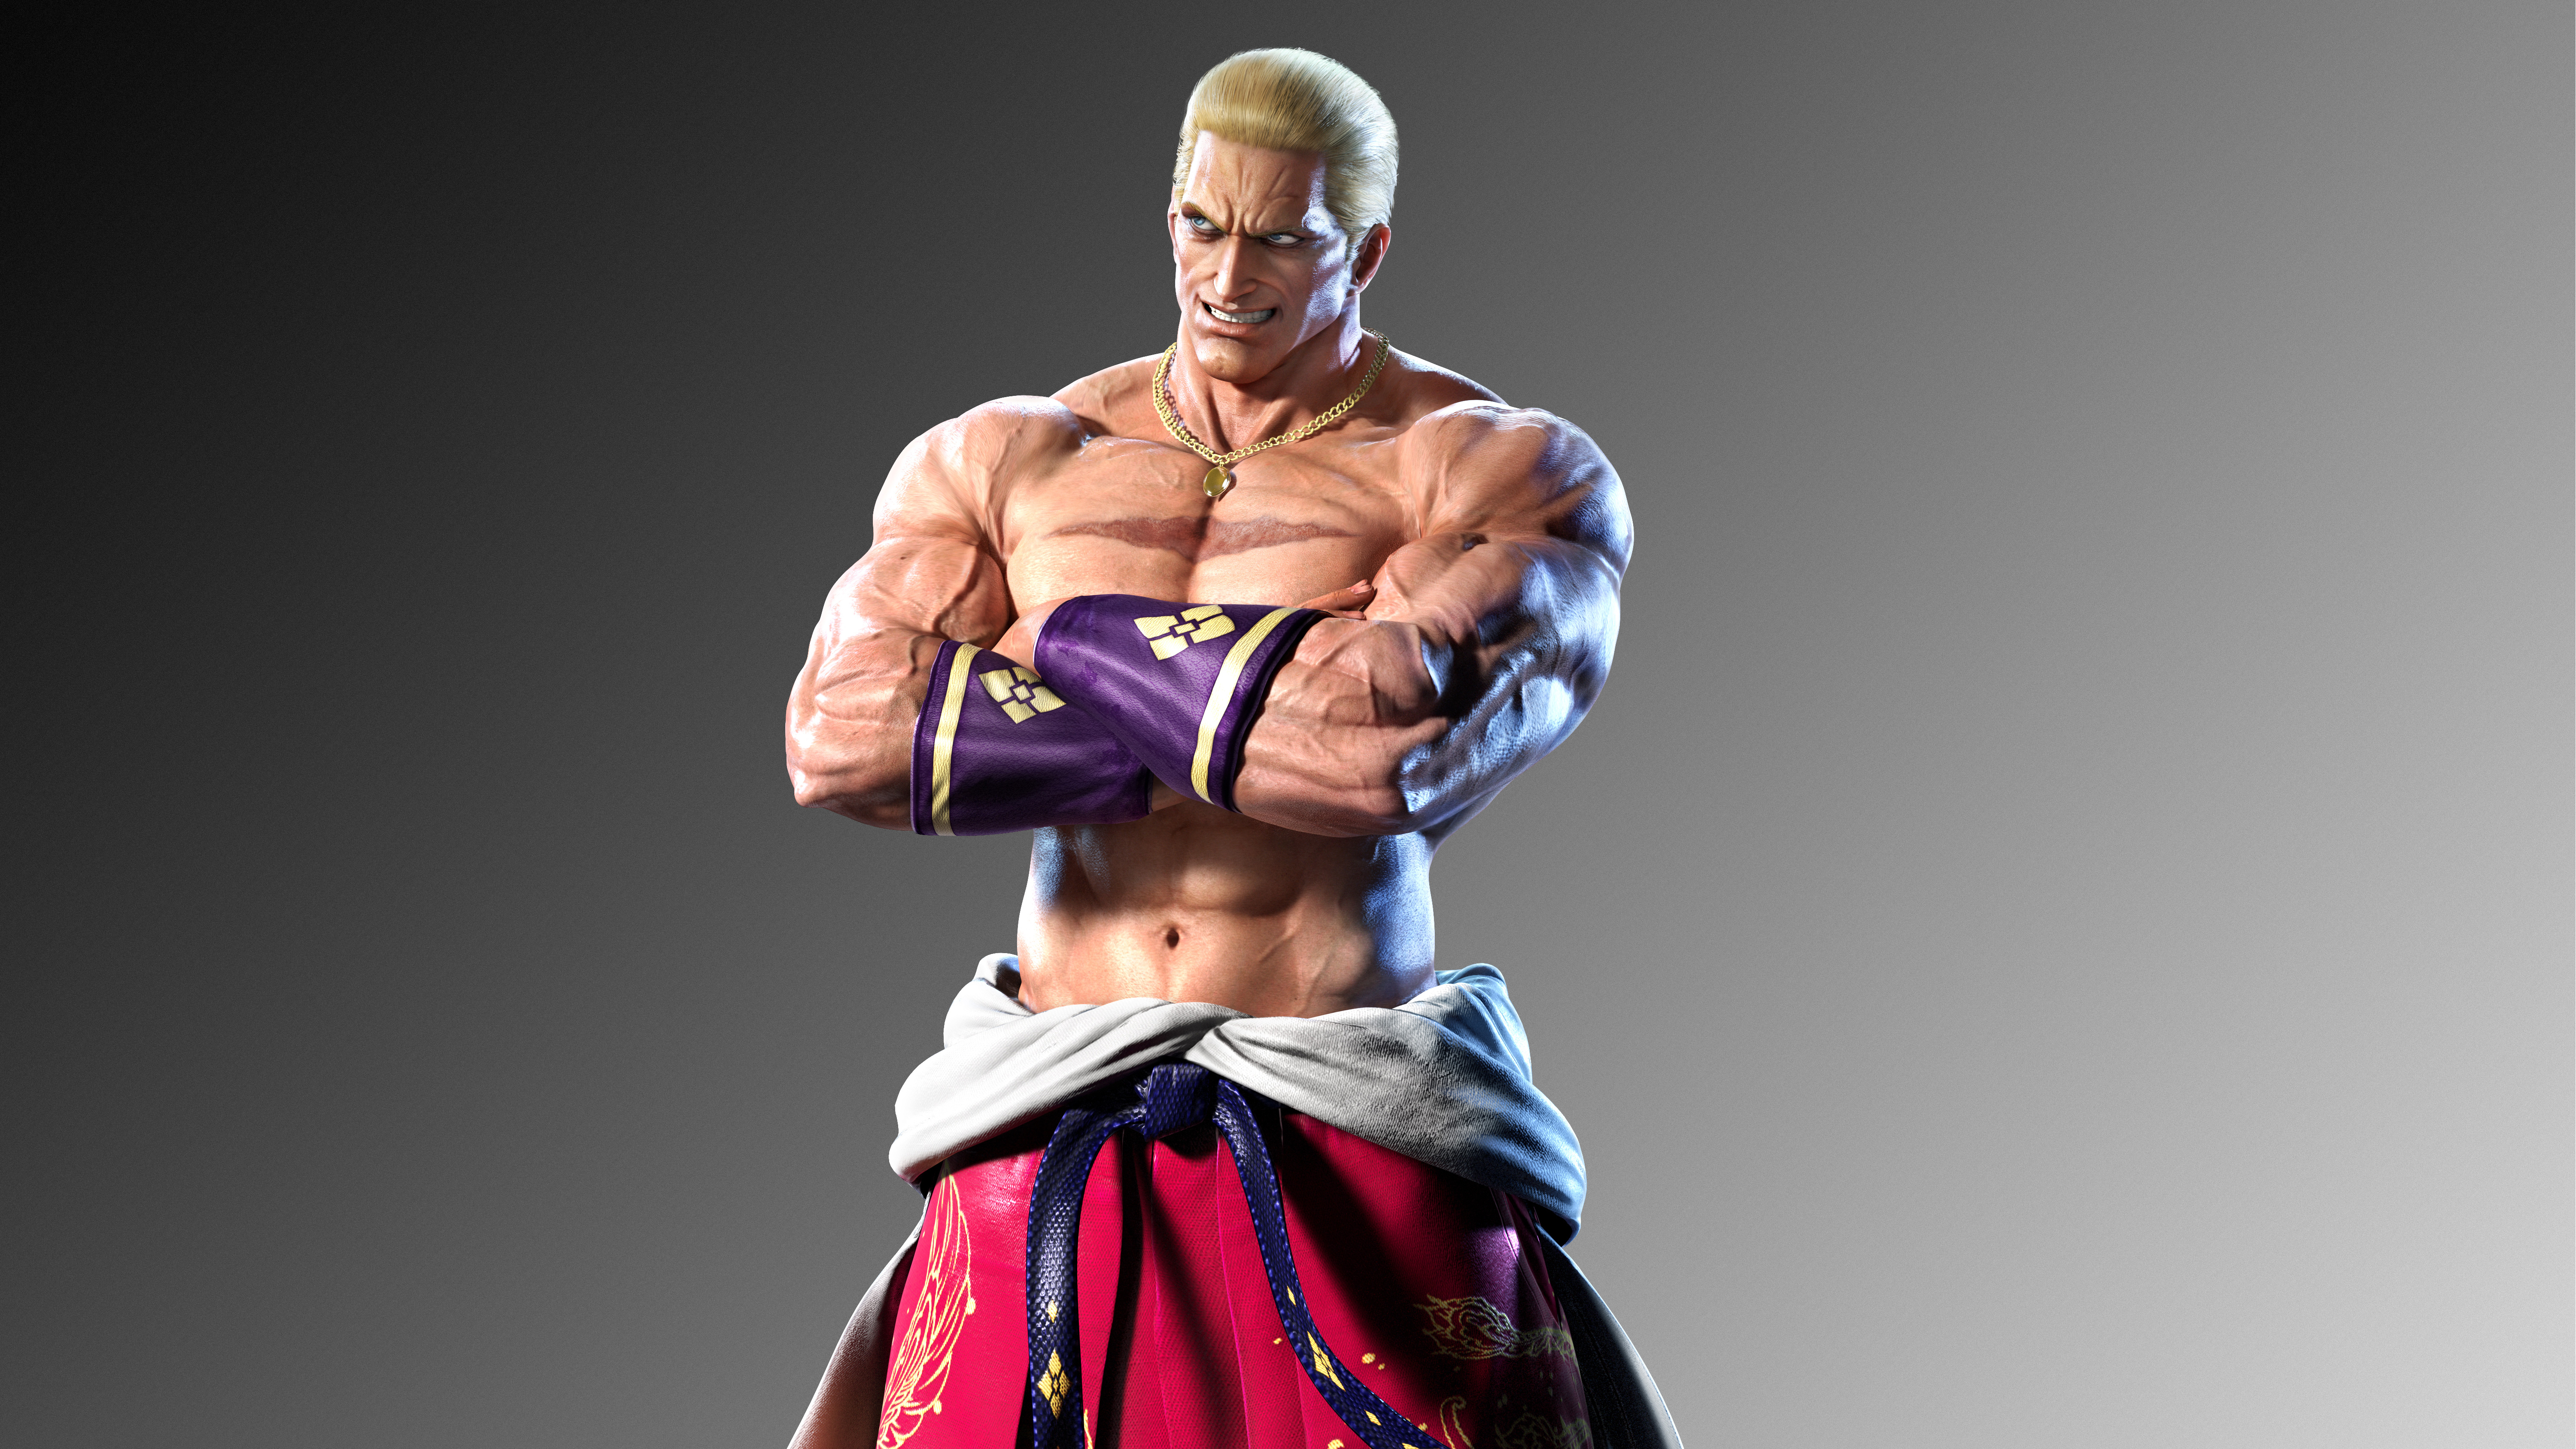 Geese Howard Tekken 7 5k Ultra Hd Games 4k Wallpapers Images Backgrounds Photos And Pictures